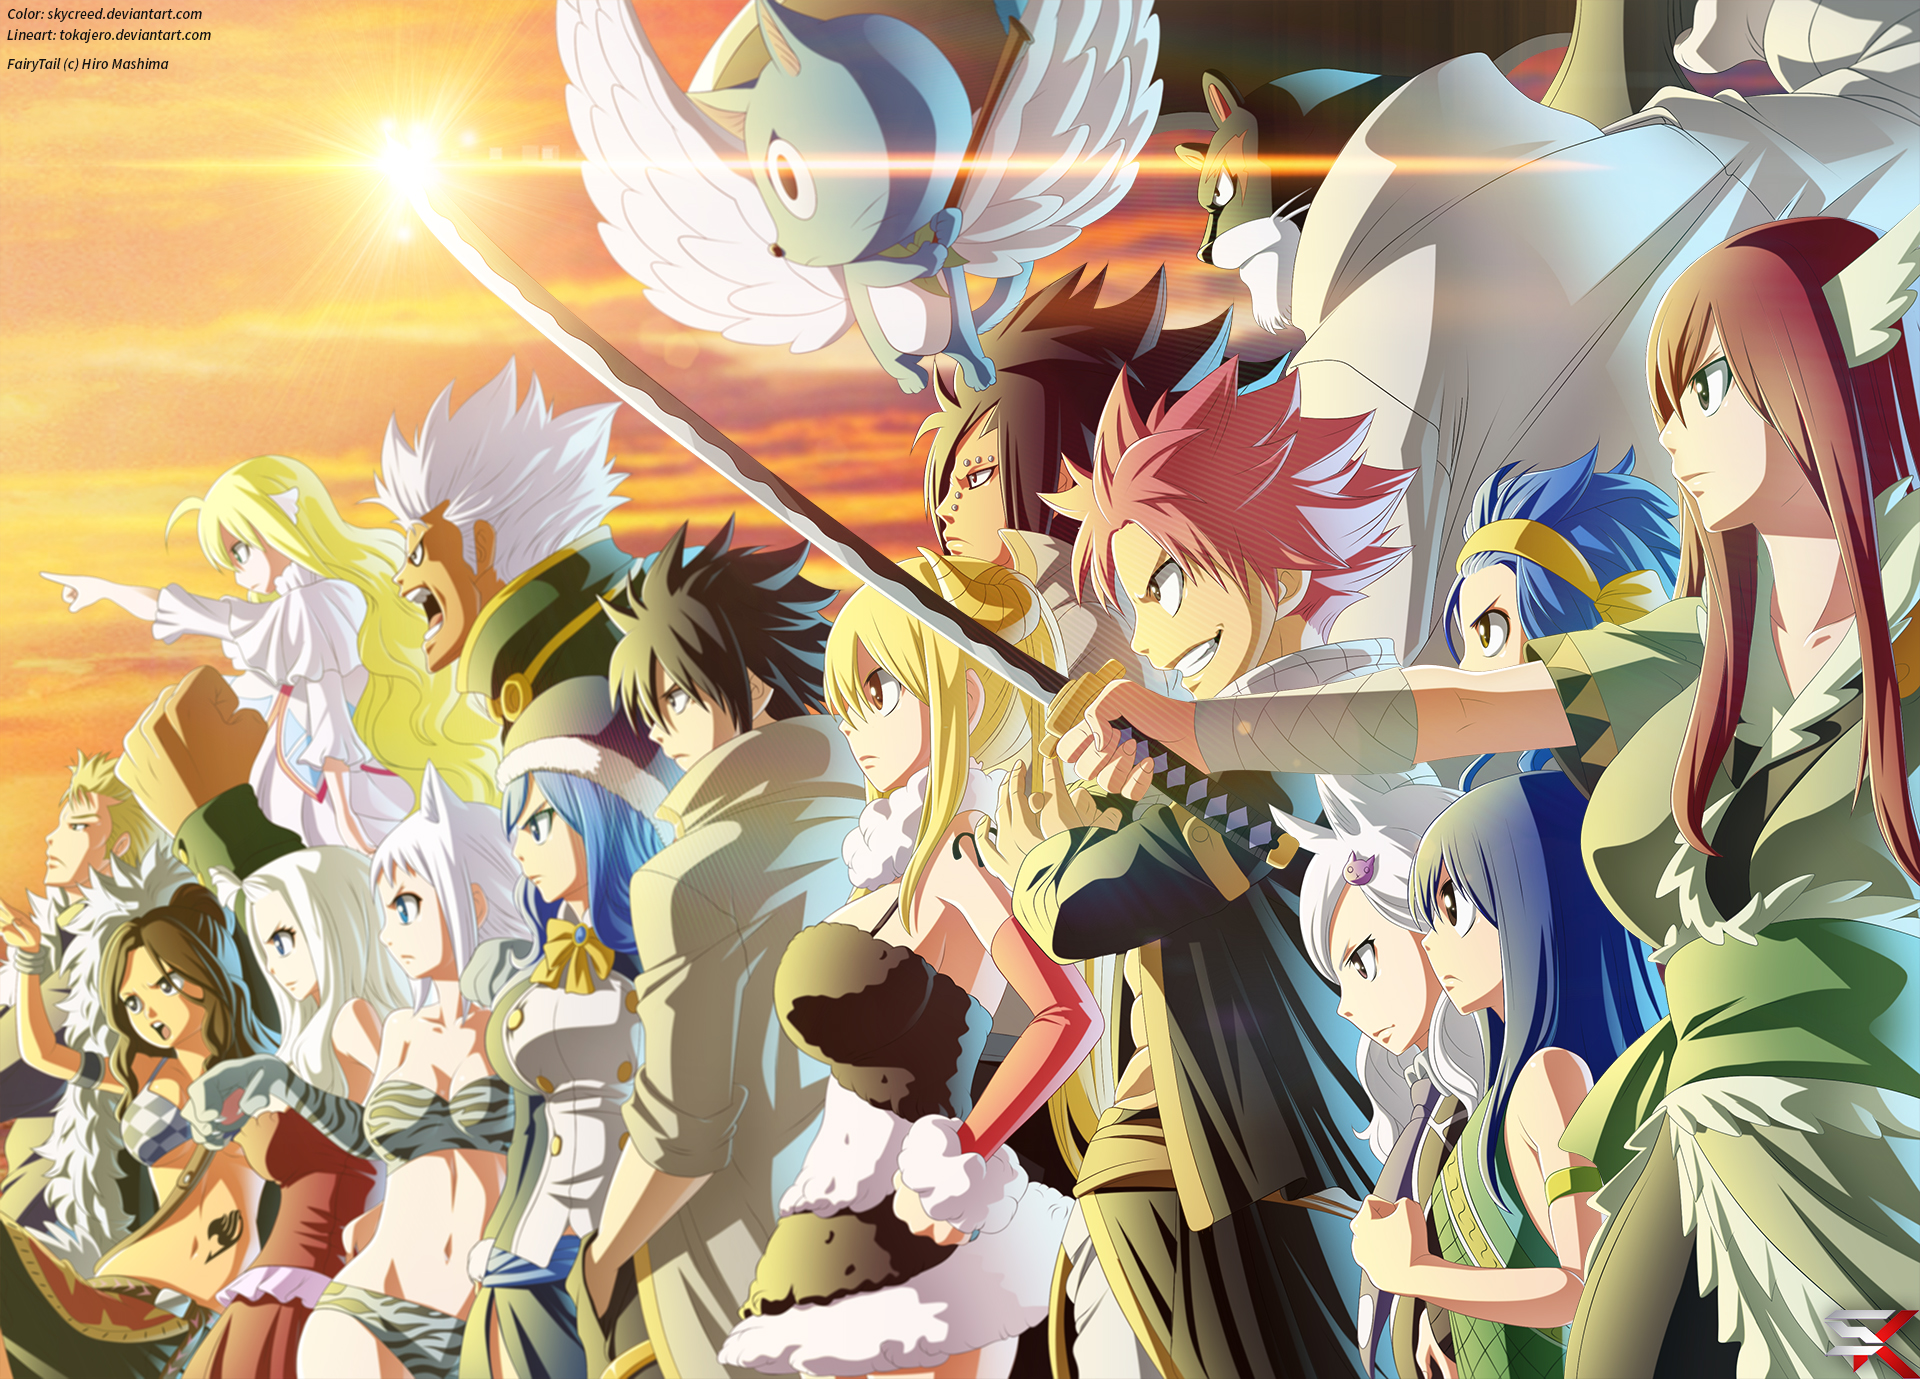 Fairy tail hd wallpaper background image 1920x1379 - Image de natsu fairy tail ...